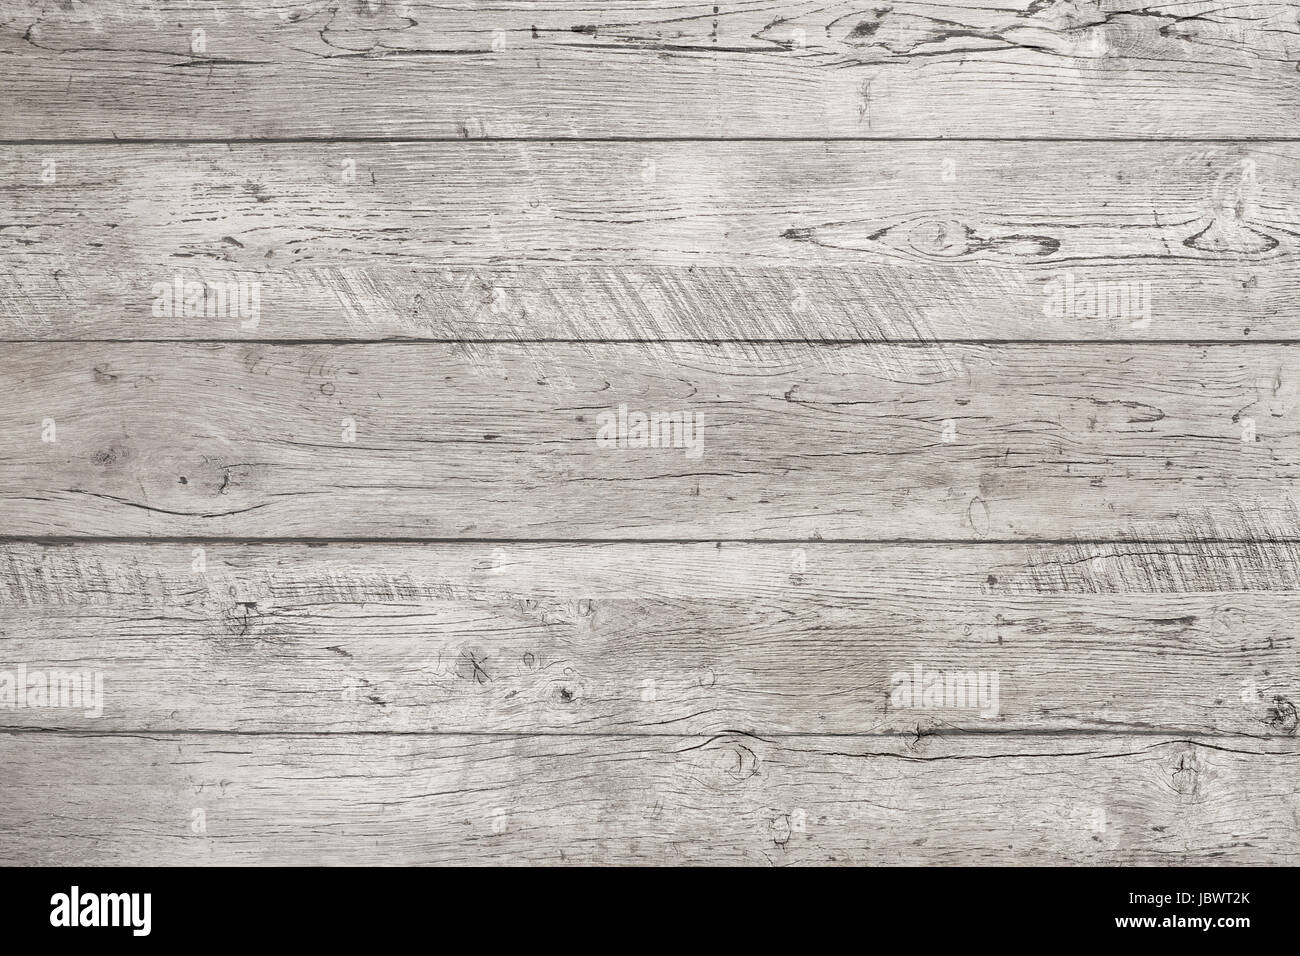 White Washed Wooden Planks, Wood Texture, Wood Wall